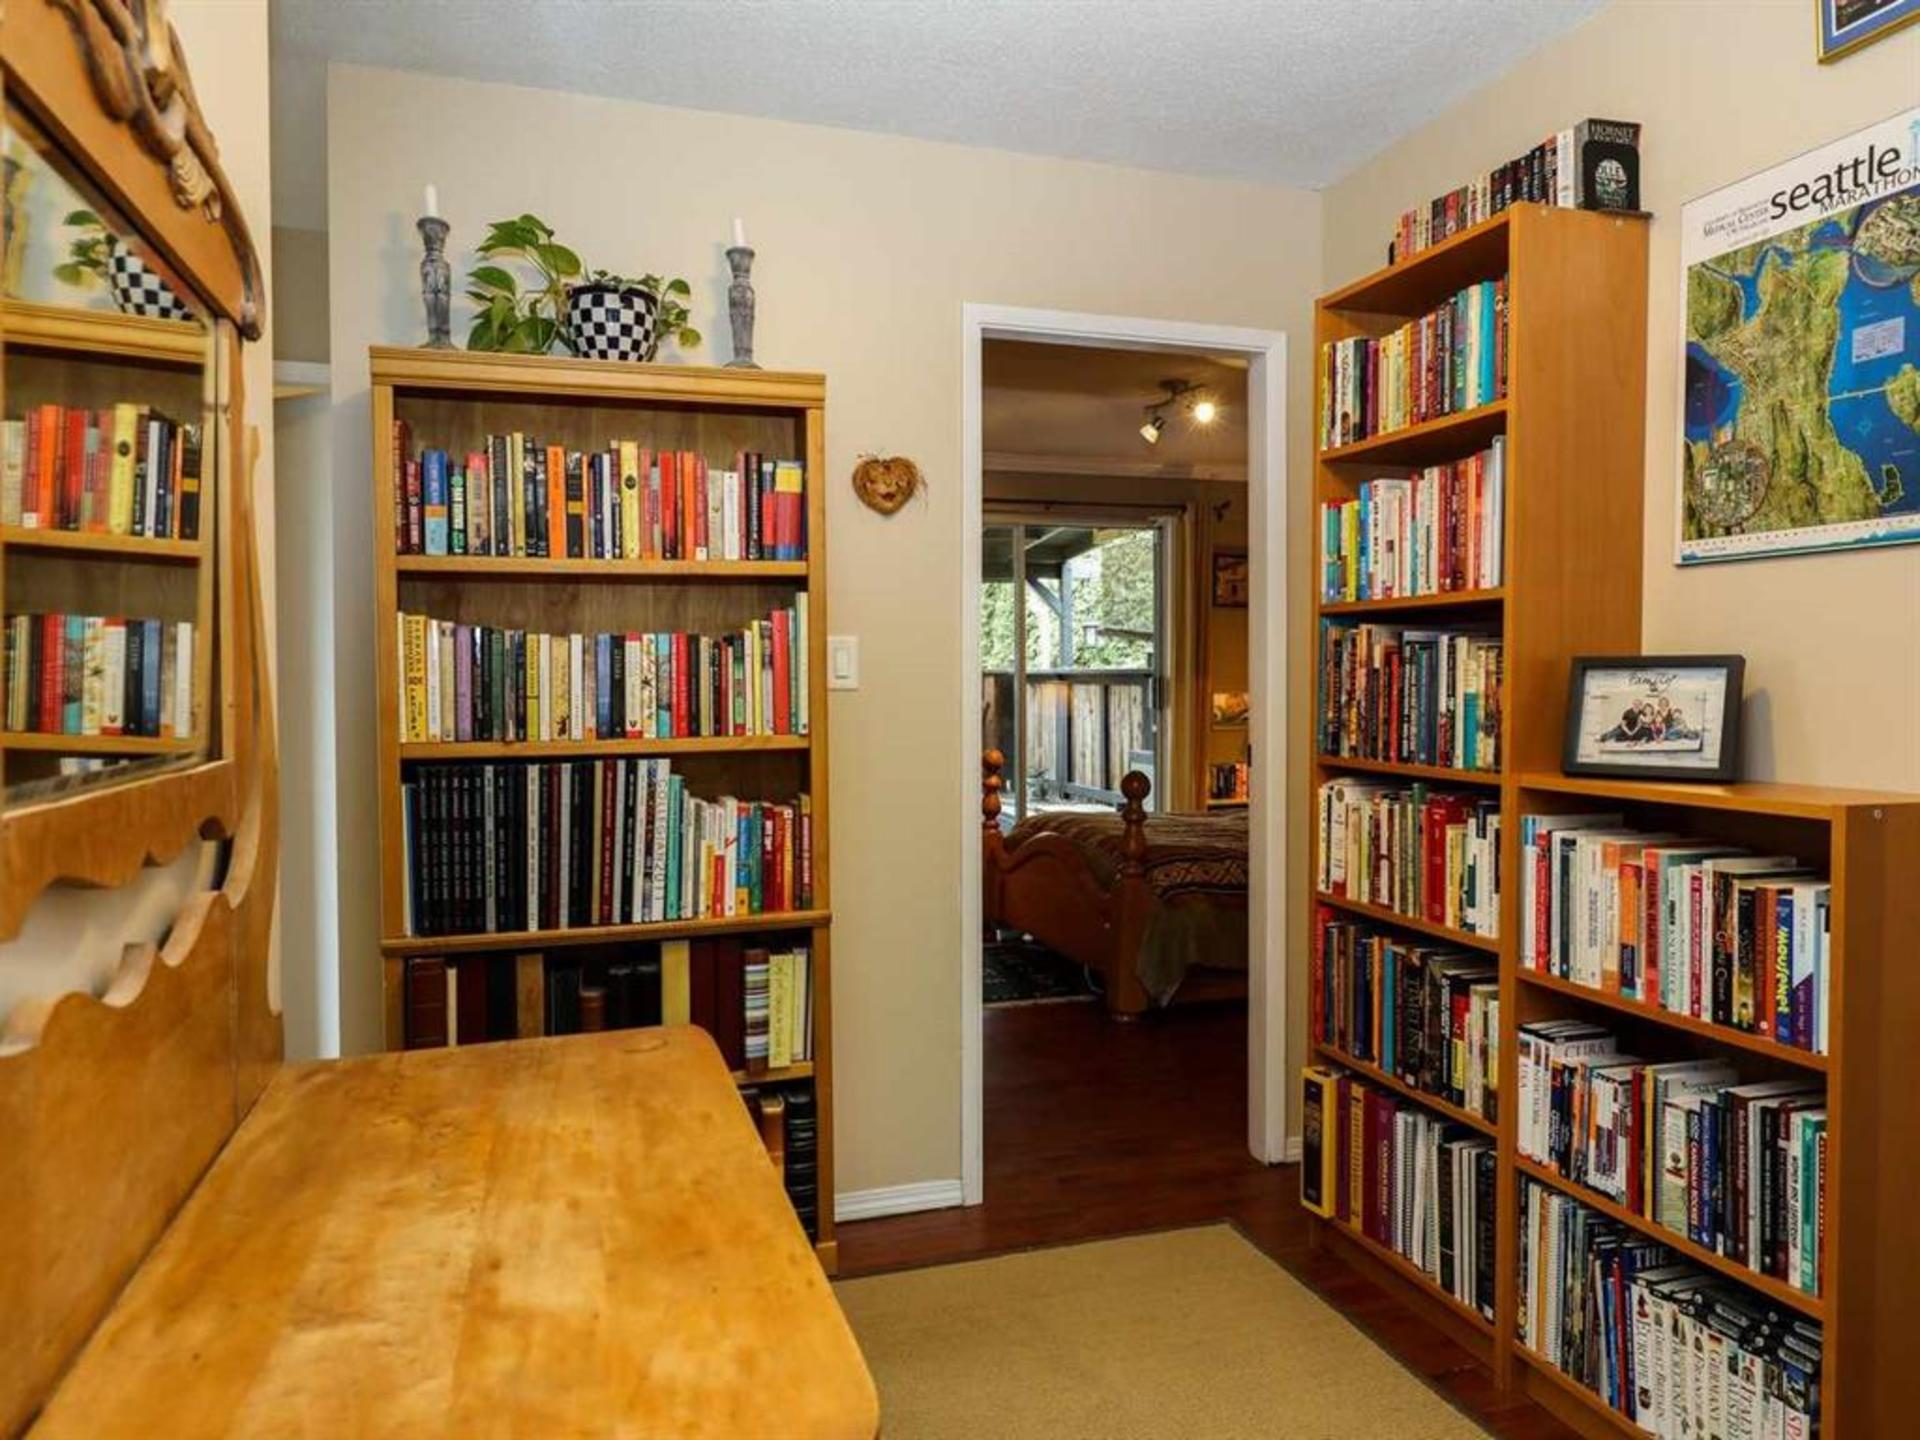 262161026-12 at 514 West 28th Street, Upper Lonsdale, North Vancouver